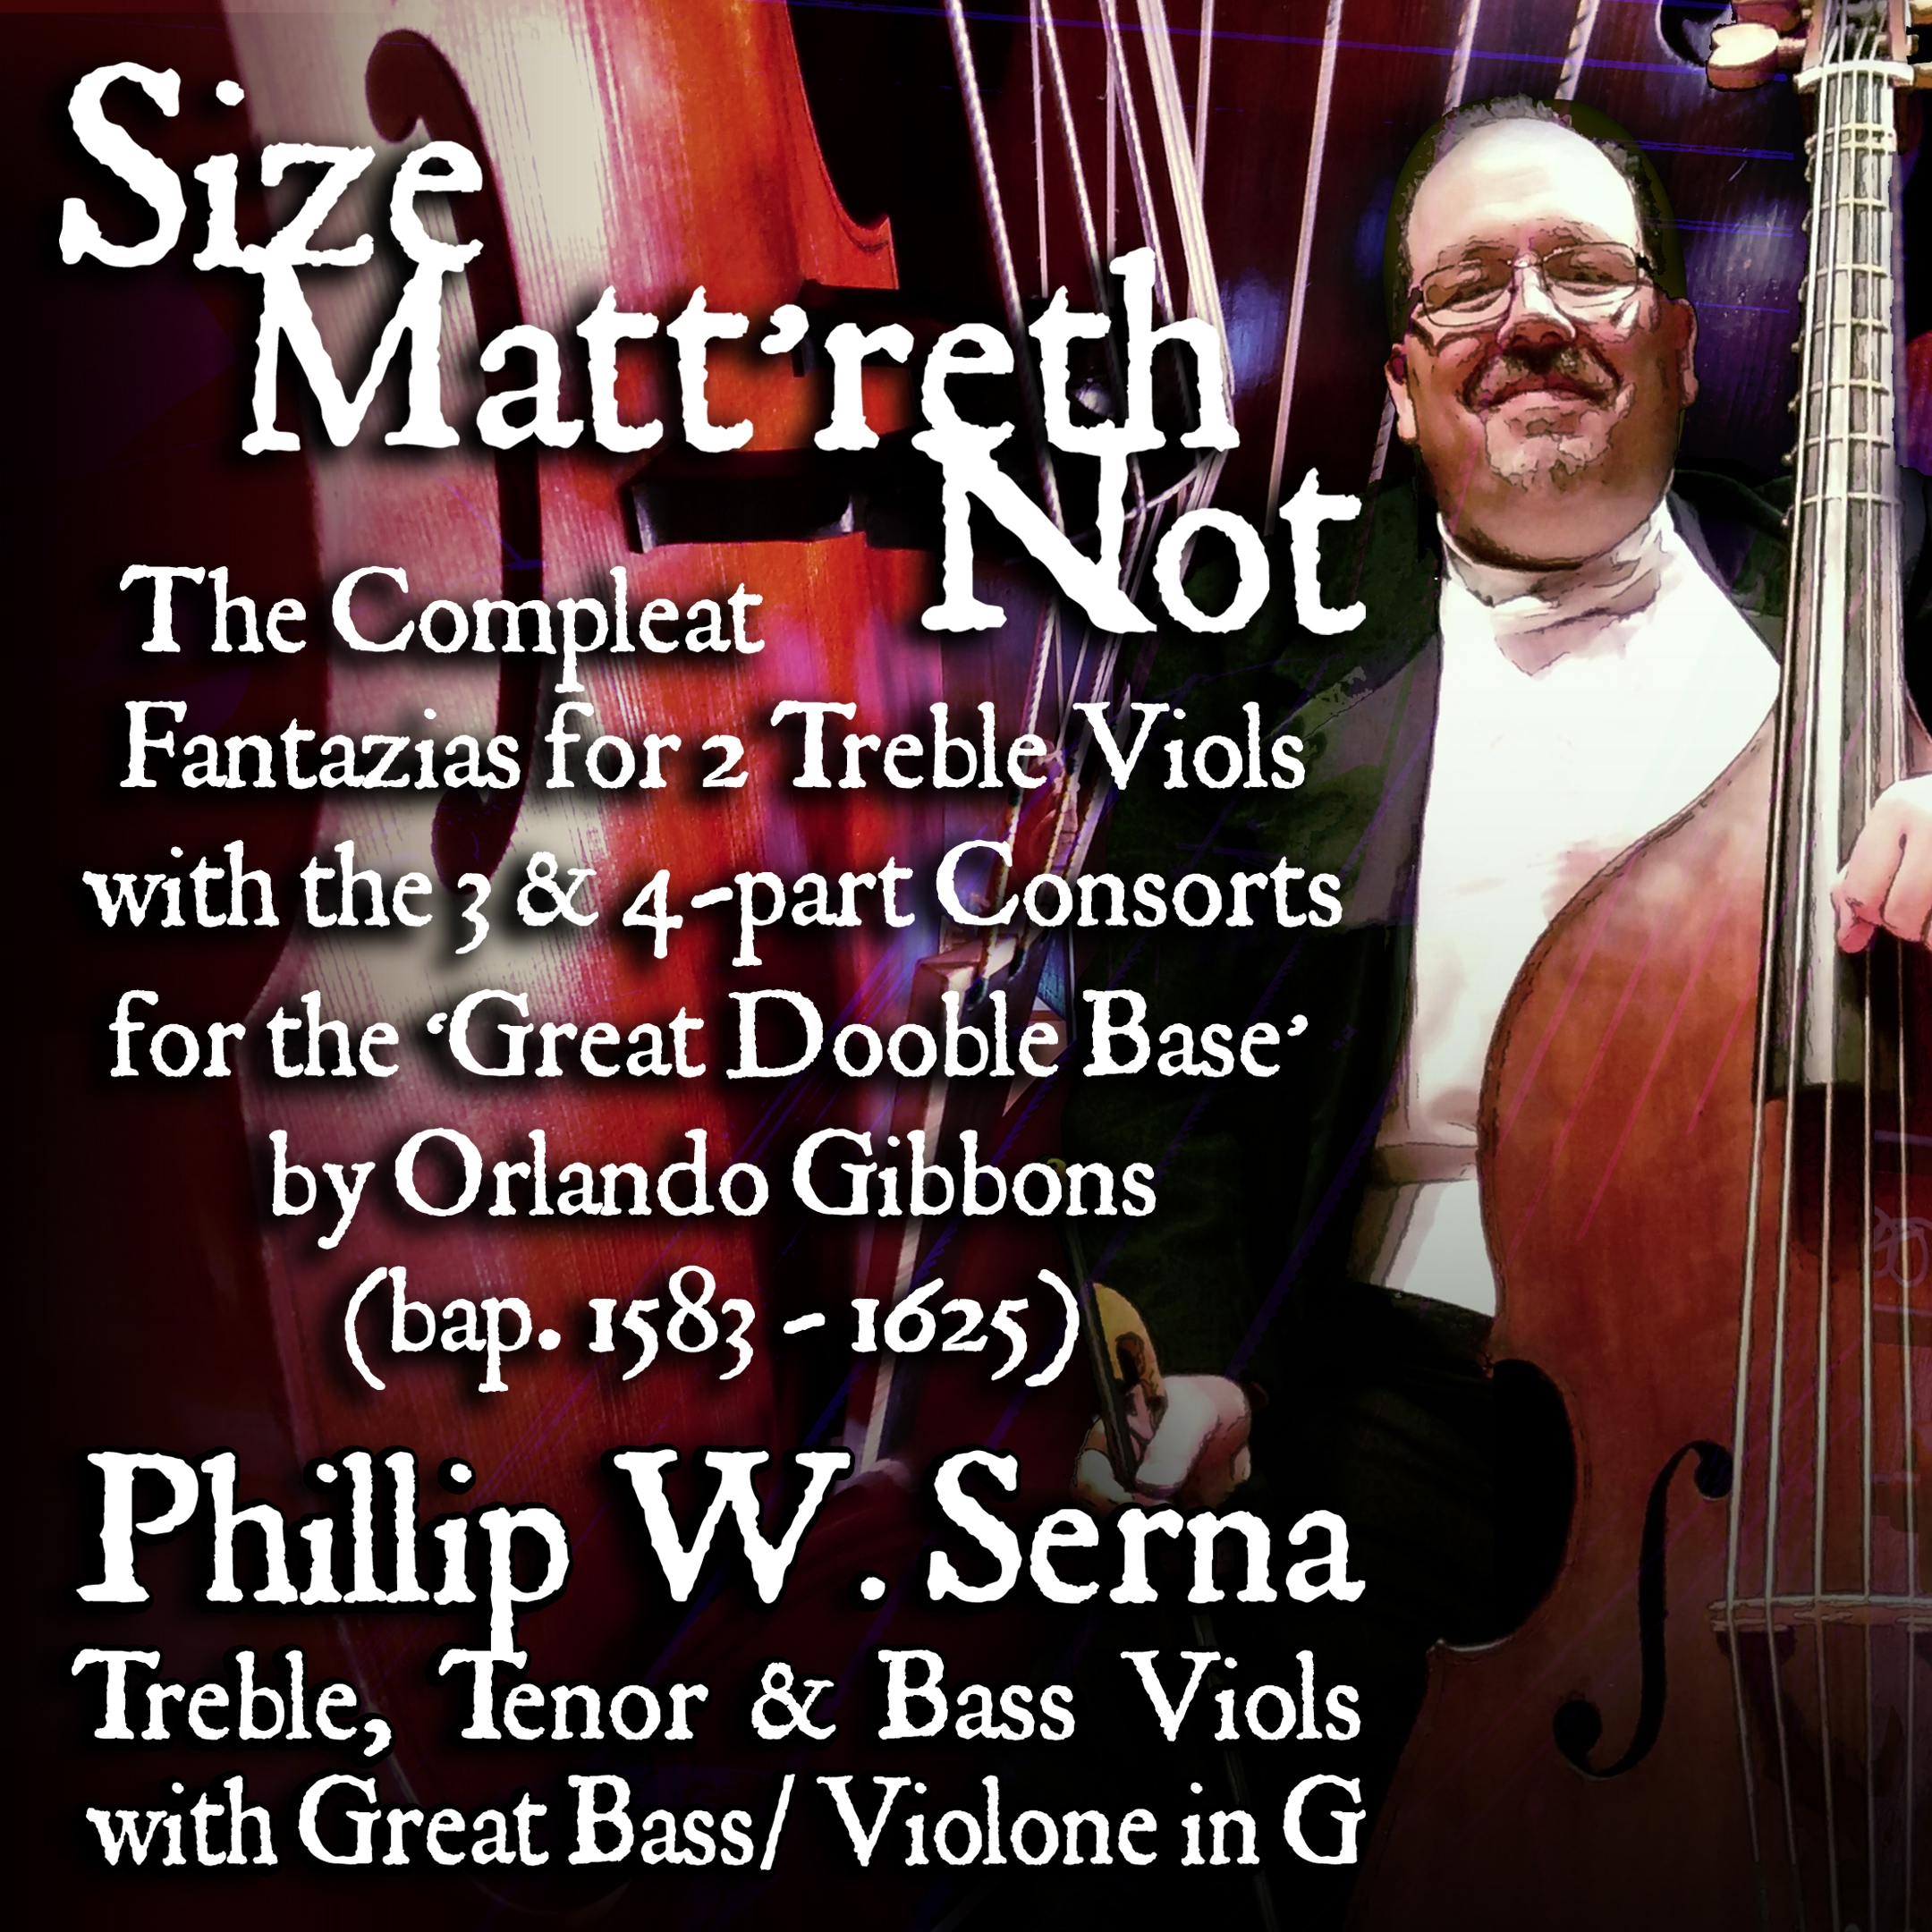 Purchase Size Matt'reth Not – The Compleat Fantazias for 2 Treble Viols & the 3 & 4-part Consorts for the 'Great Dooble Base' by Orlando Gibbons (bap.1583-1625)